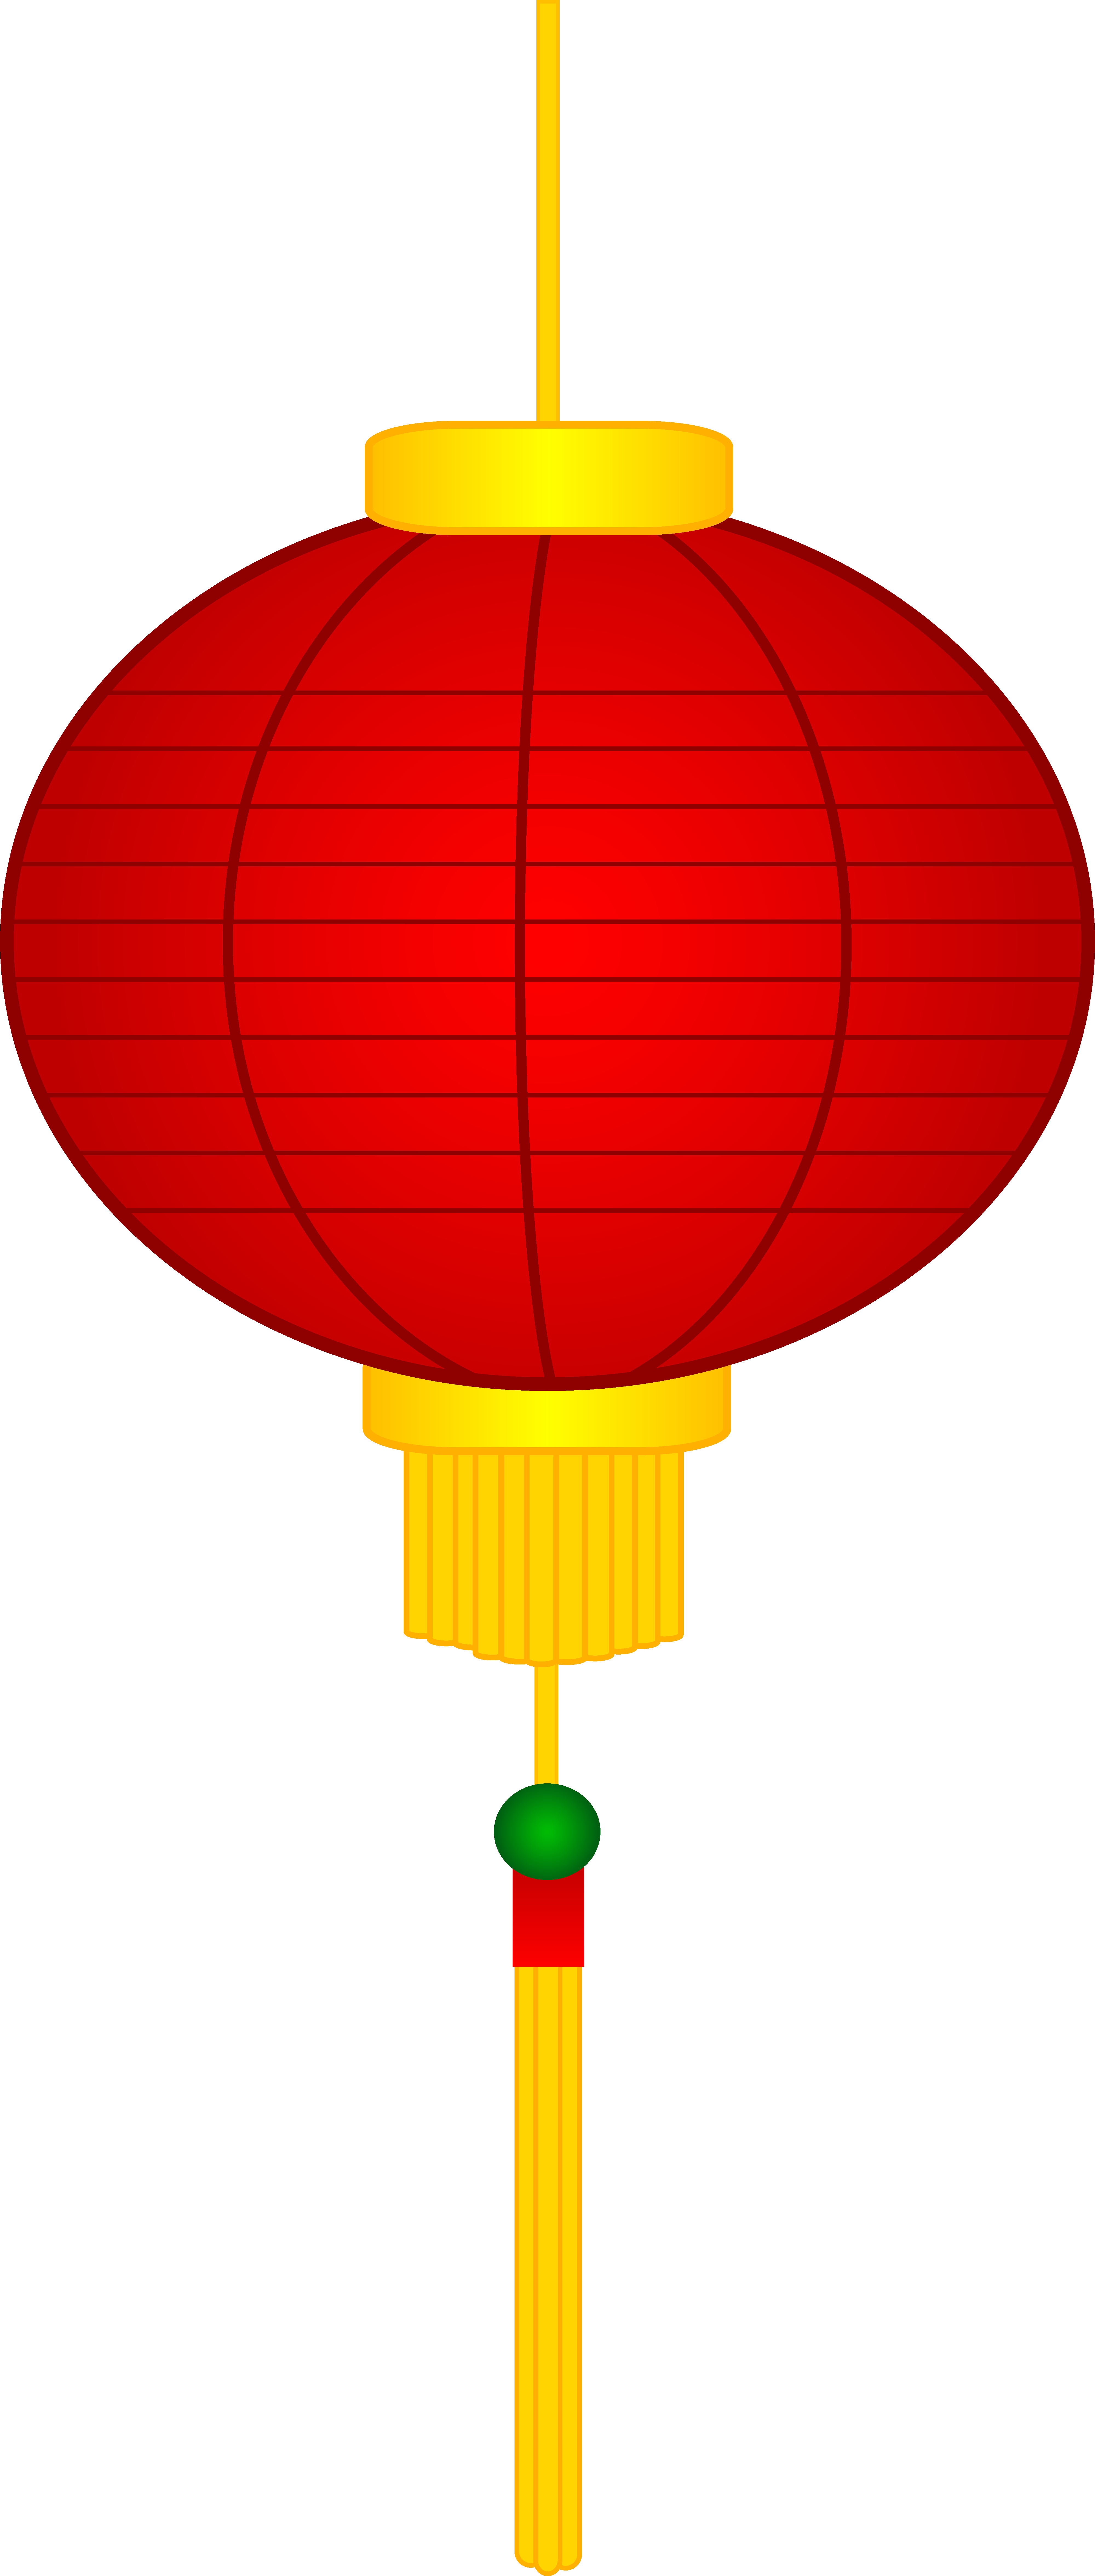 Chinese lantern clipart transparent background.